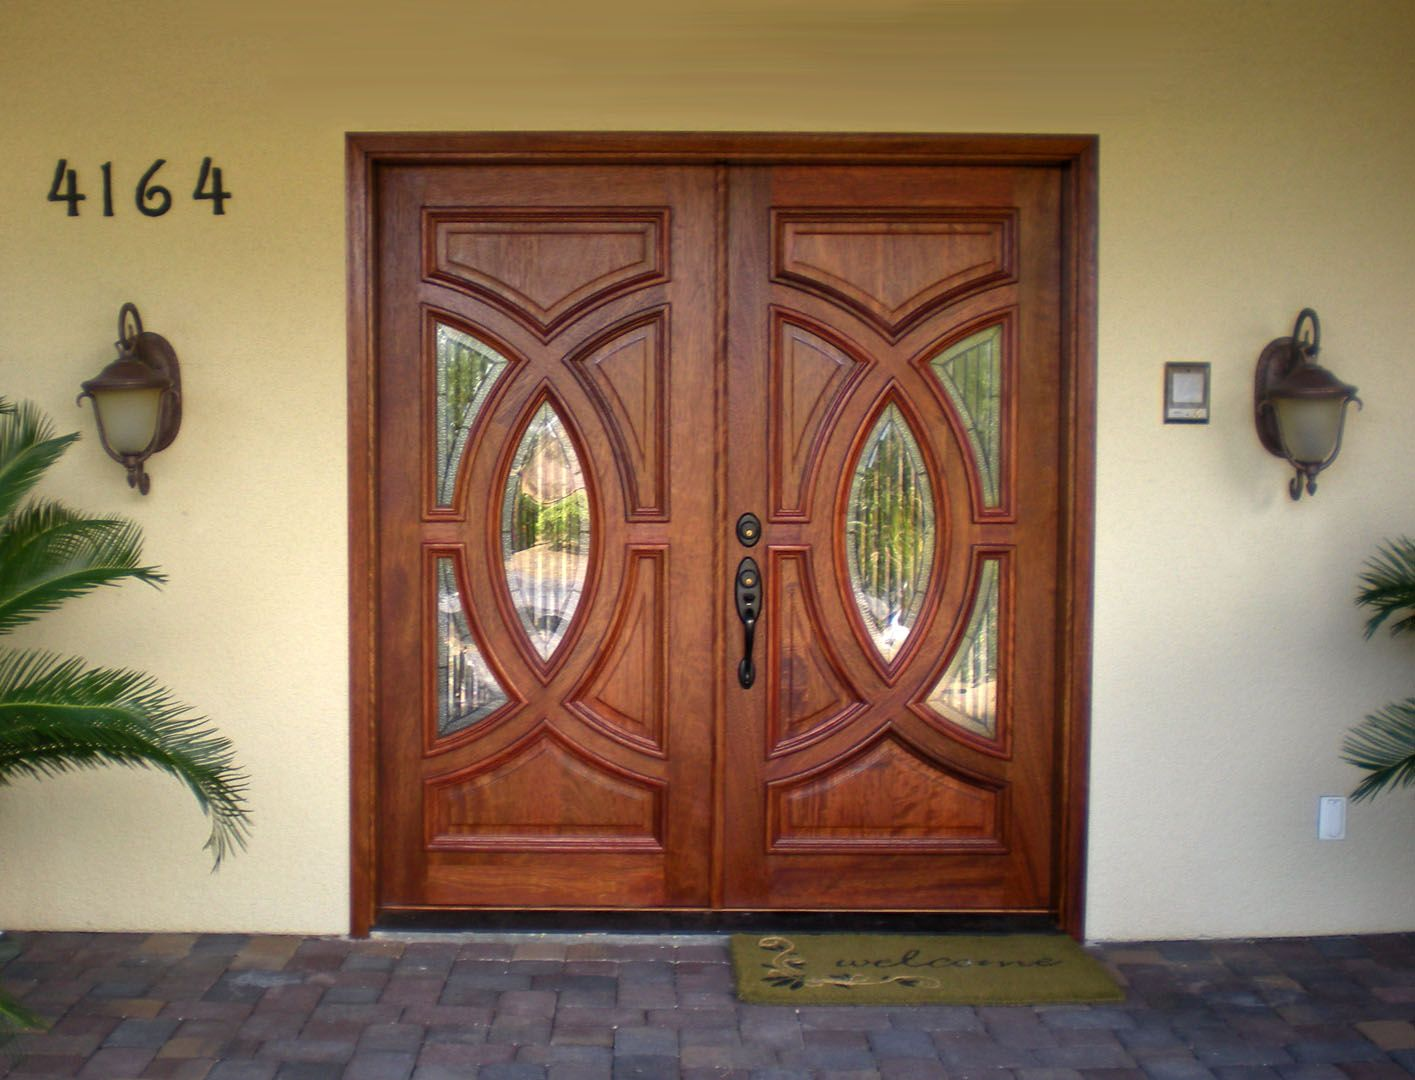 36 best doors images on Pinterest | Bookmarks, Front doors and ...